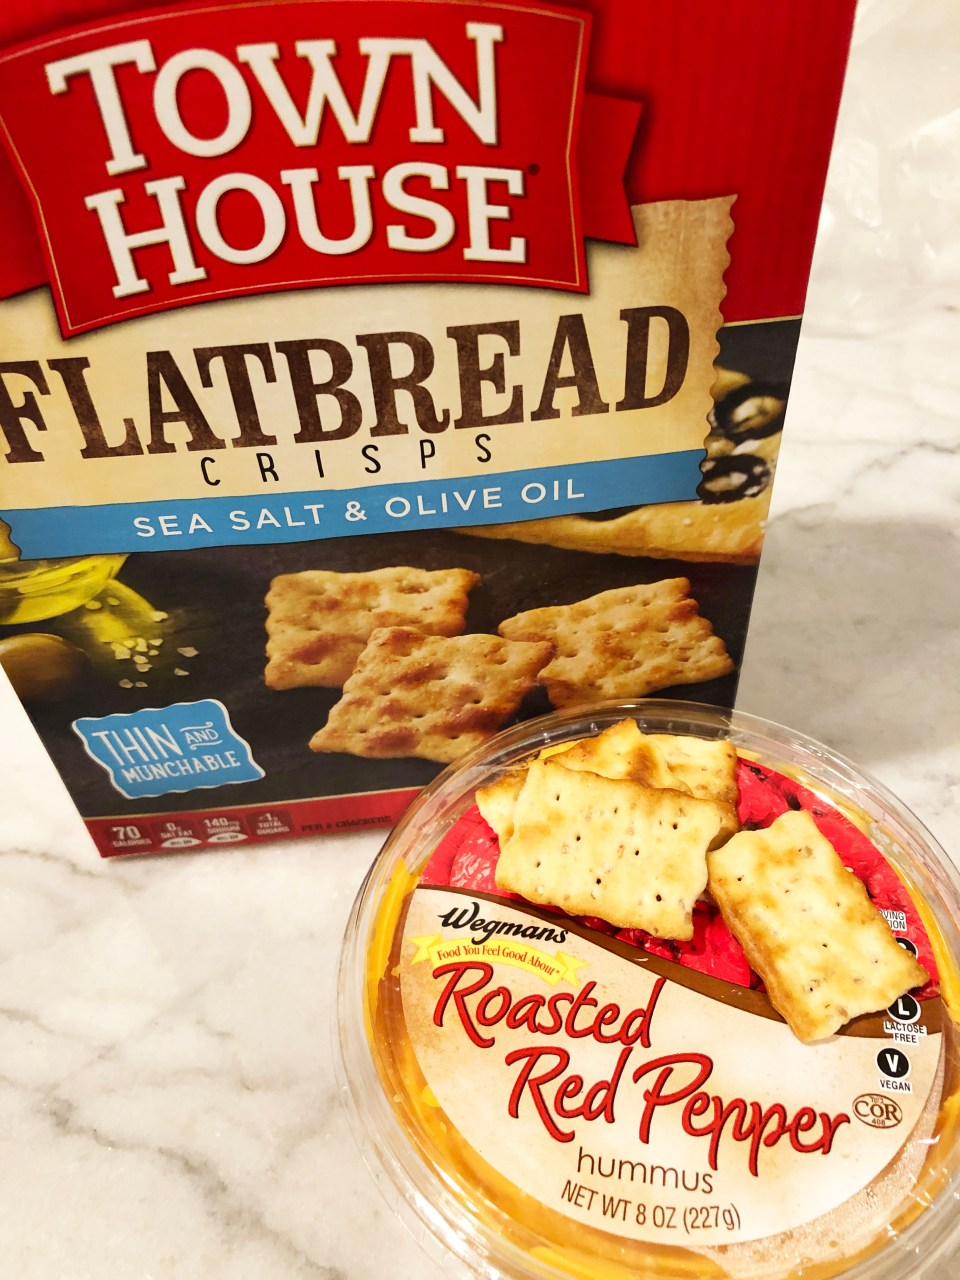 Townhouse Flatbread Crisps + Roasted Red Pepper Hummus